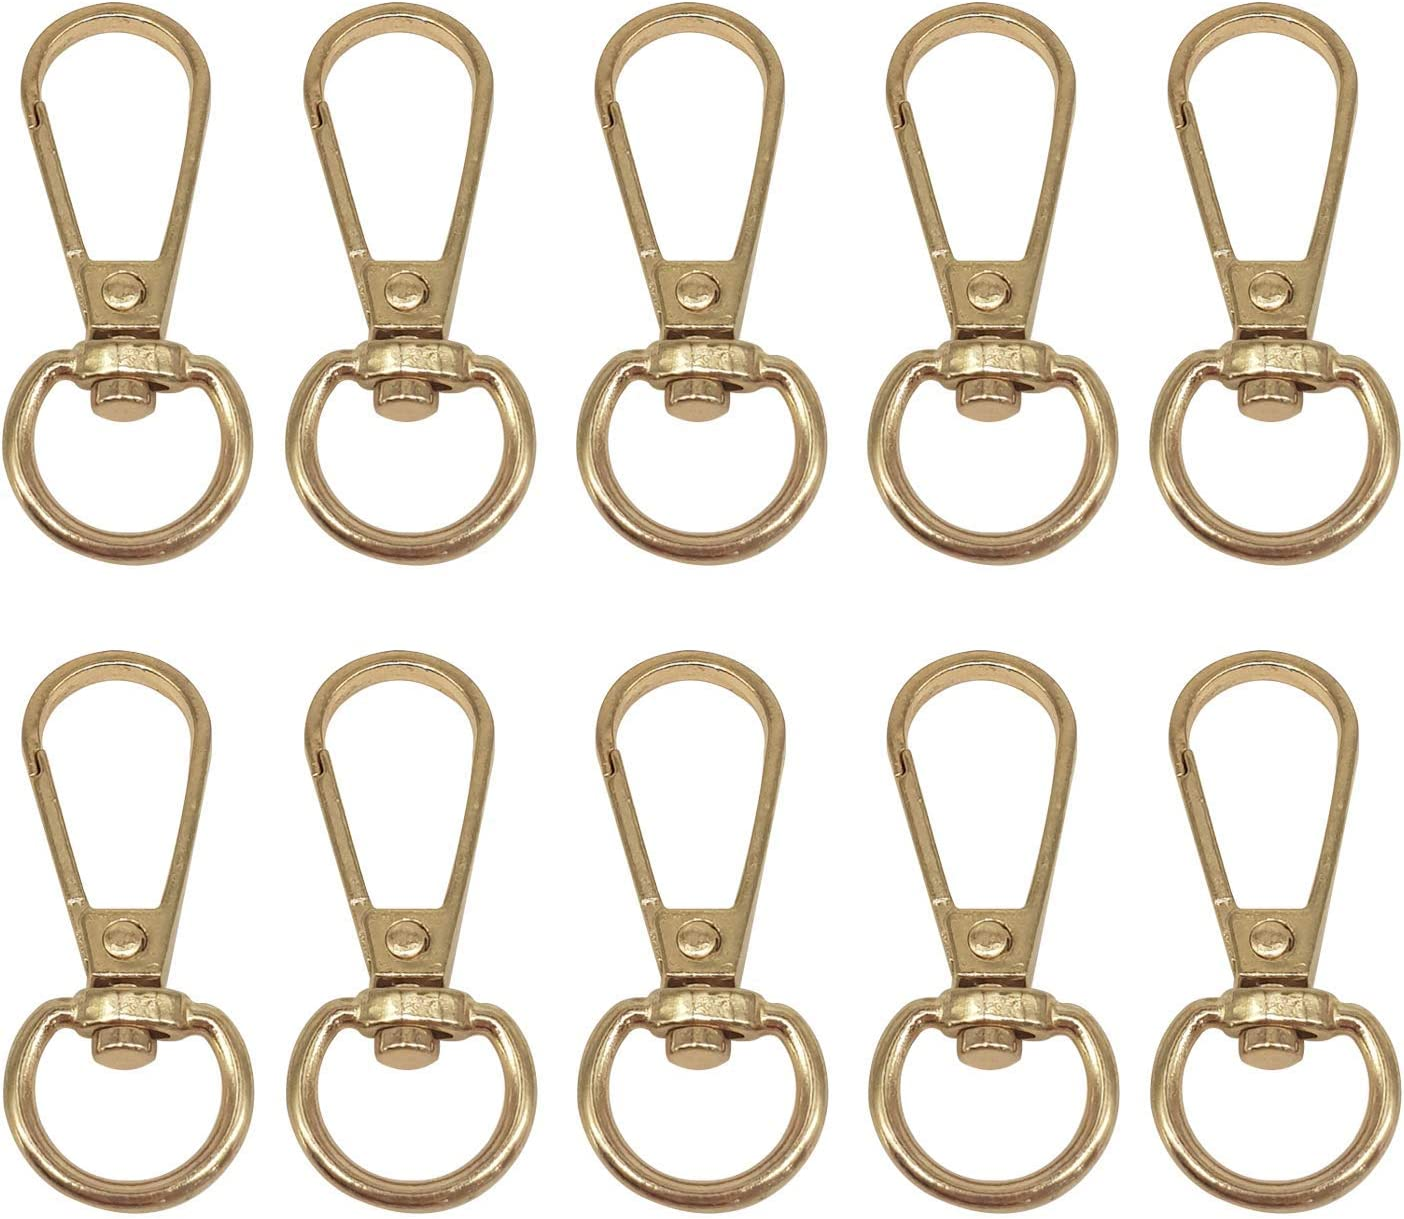 DIY Leather Craft 13mm Gold Webbing Strap Purse Bags Accessories Purse 1pc Weddecor Swivel Claw Clasps Metal Push Clip Lobster Hook with Keyring for Keychains